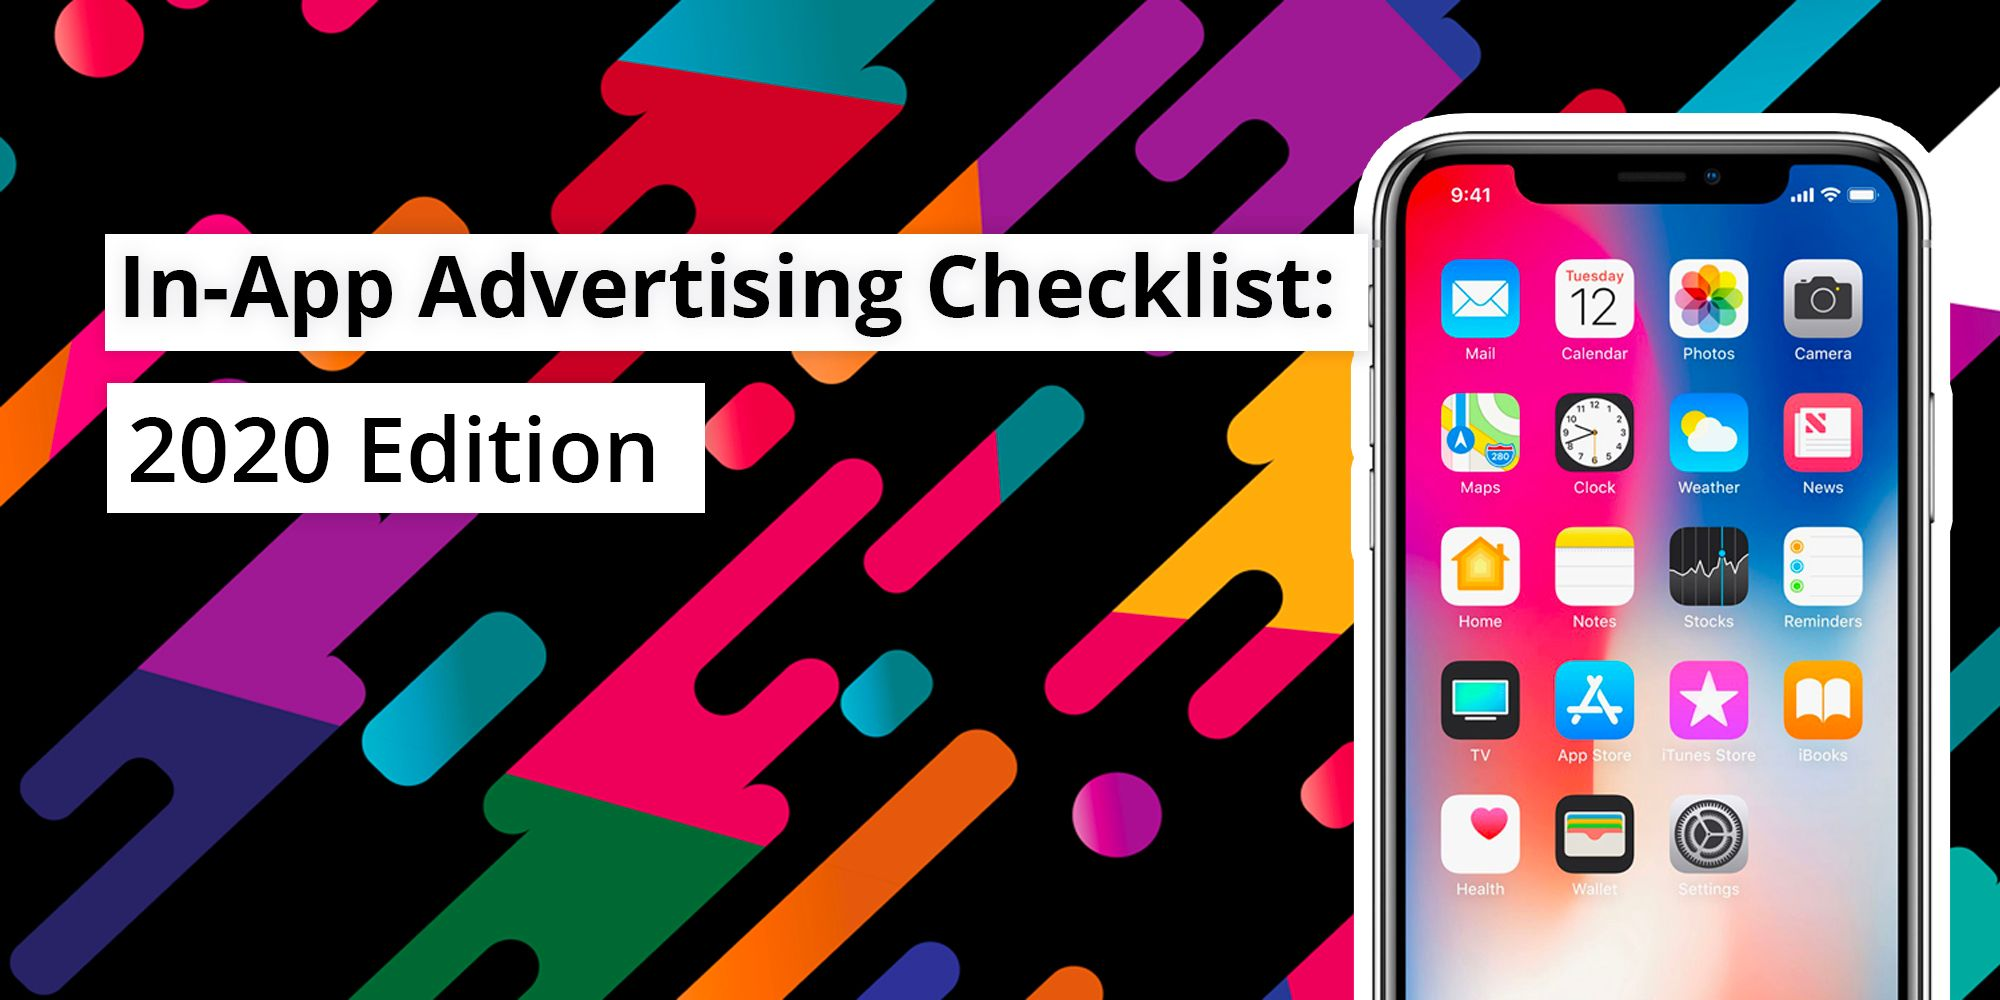 In-App Advertising Checklist: 2020 Edition